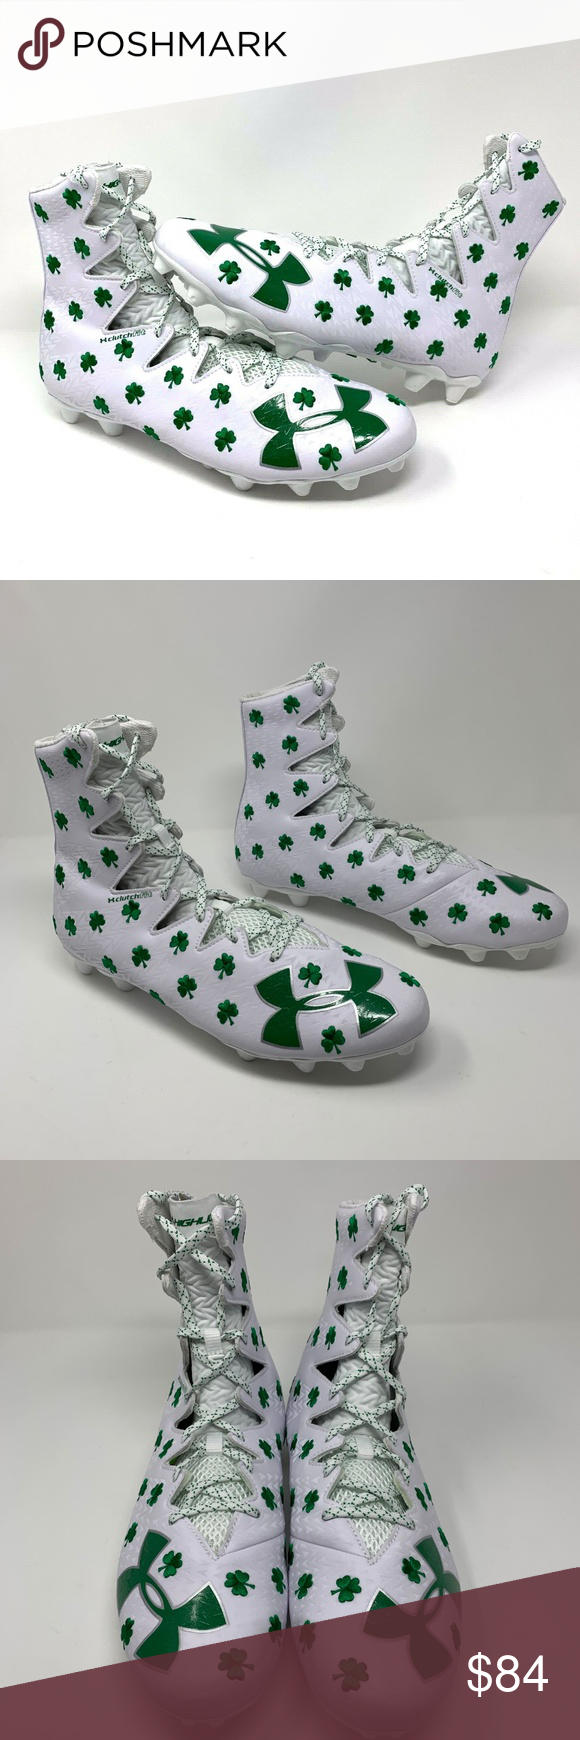 5e1c4c6c32c2 Under Armour Limited Edition Shamrock Cleats - 13 Under Armour Men's Limited  Edition Shamrock Highlight Cleats